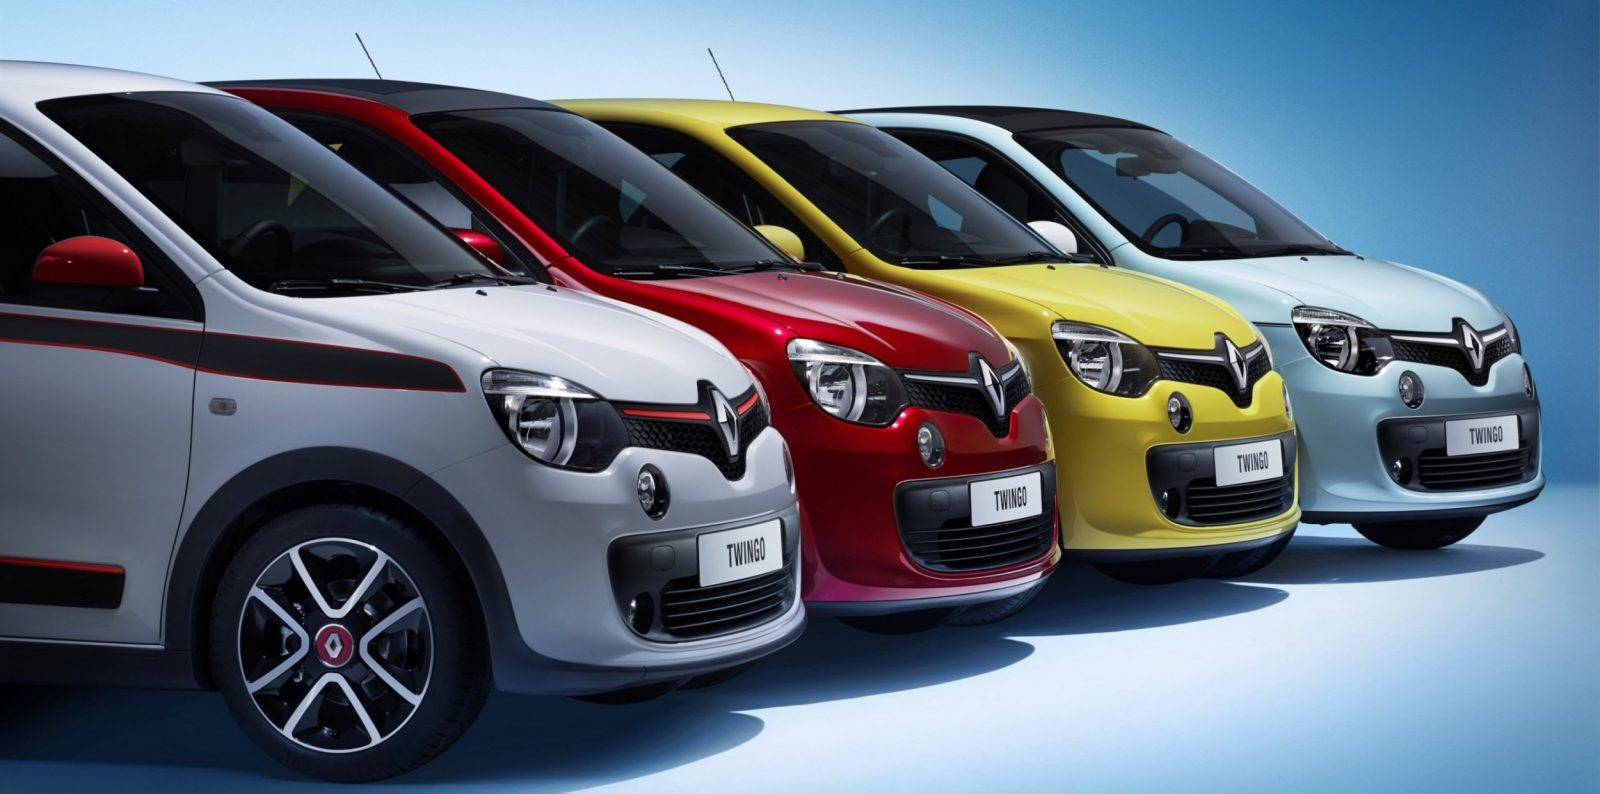 All-New Renault Twingo Packs Rear Engine, Four Doors and Cute New Style 3